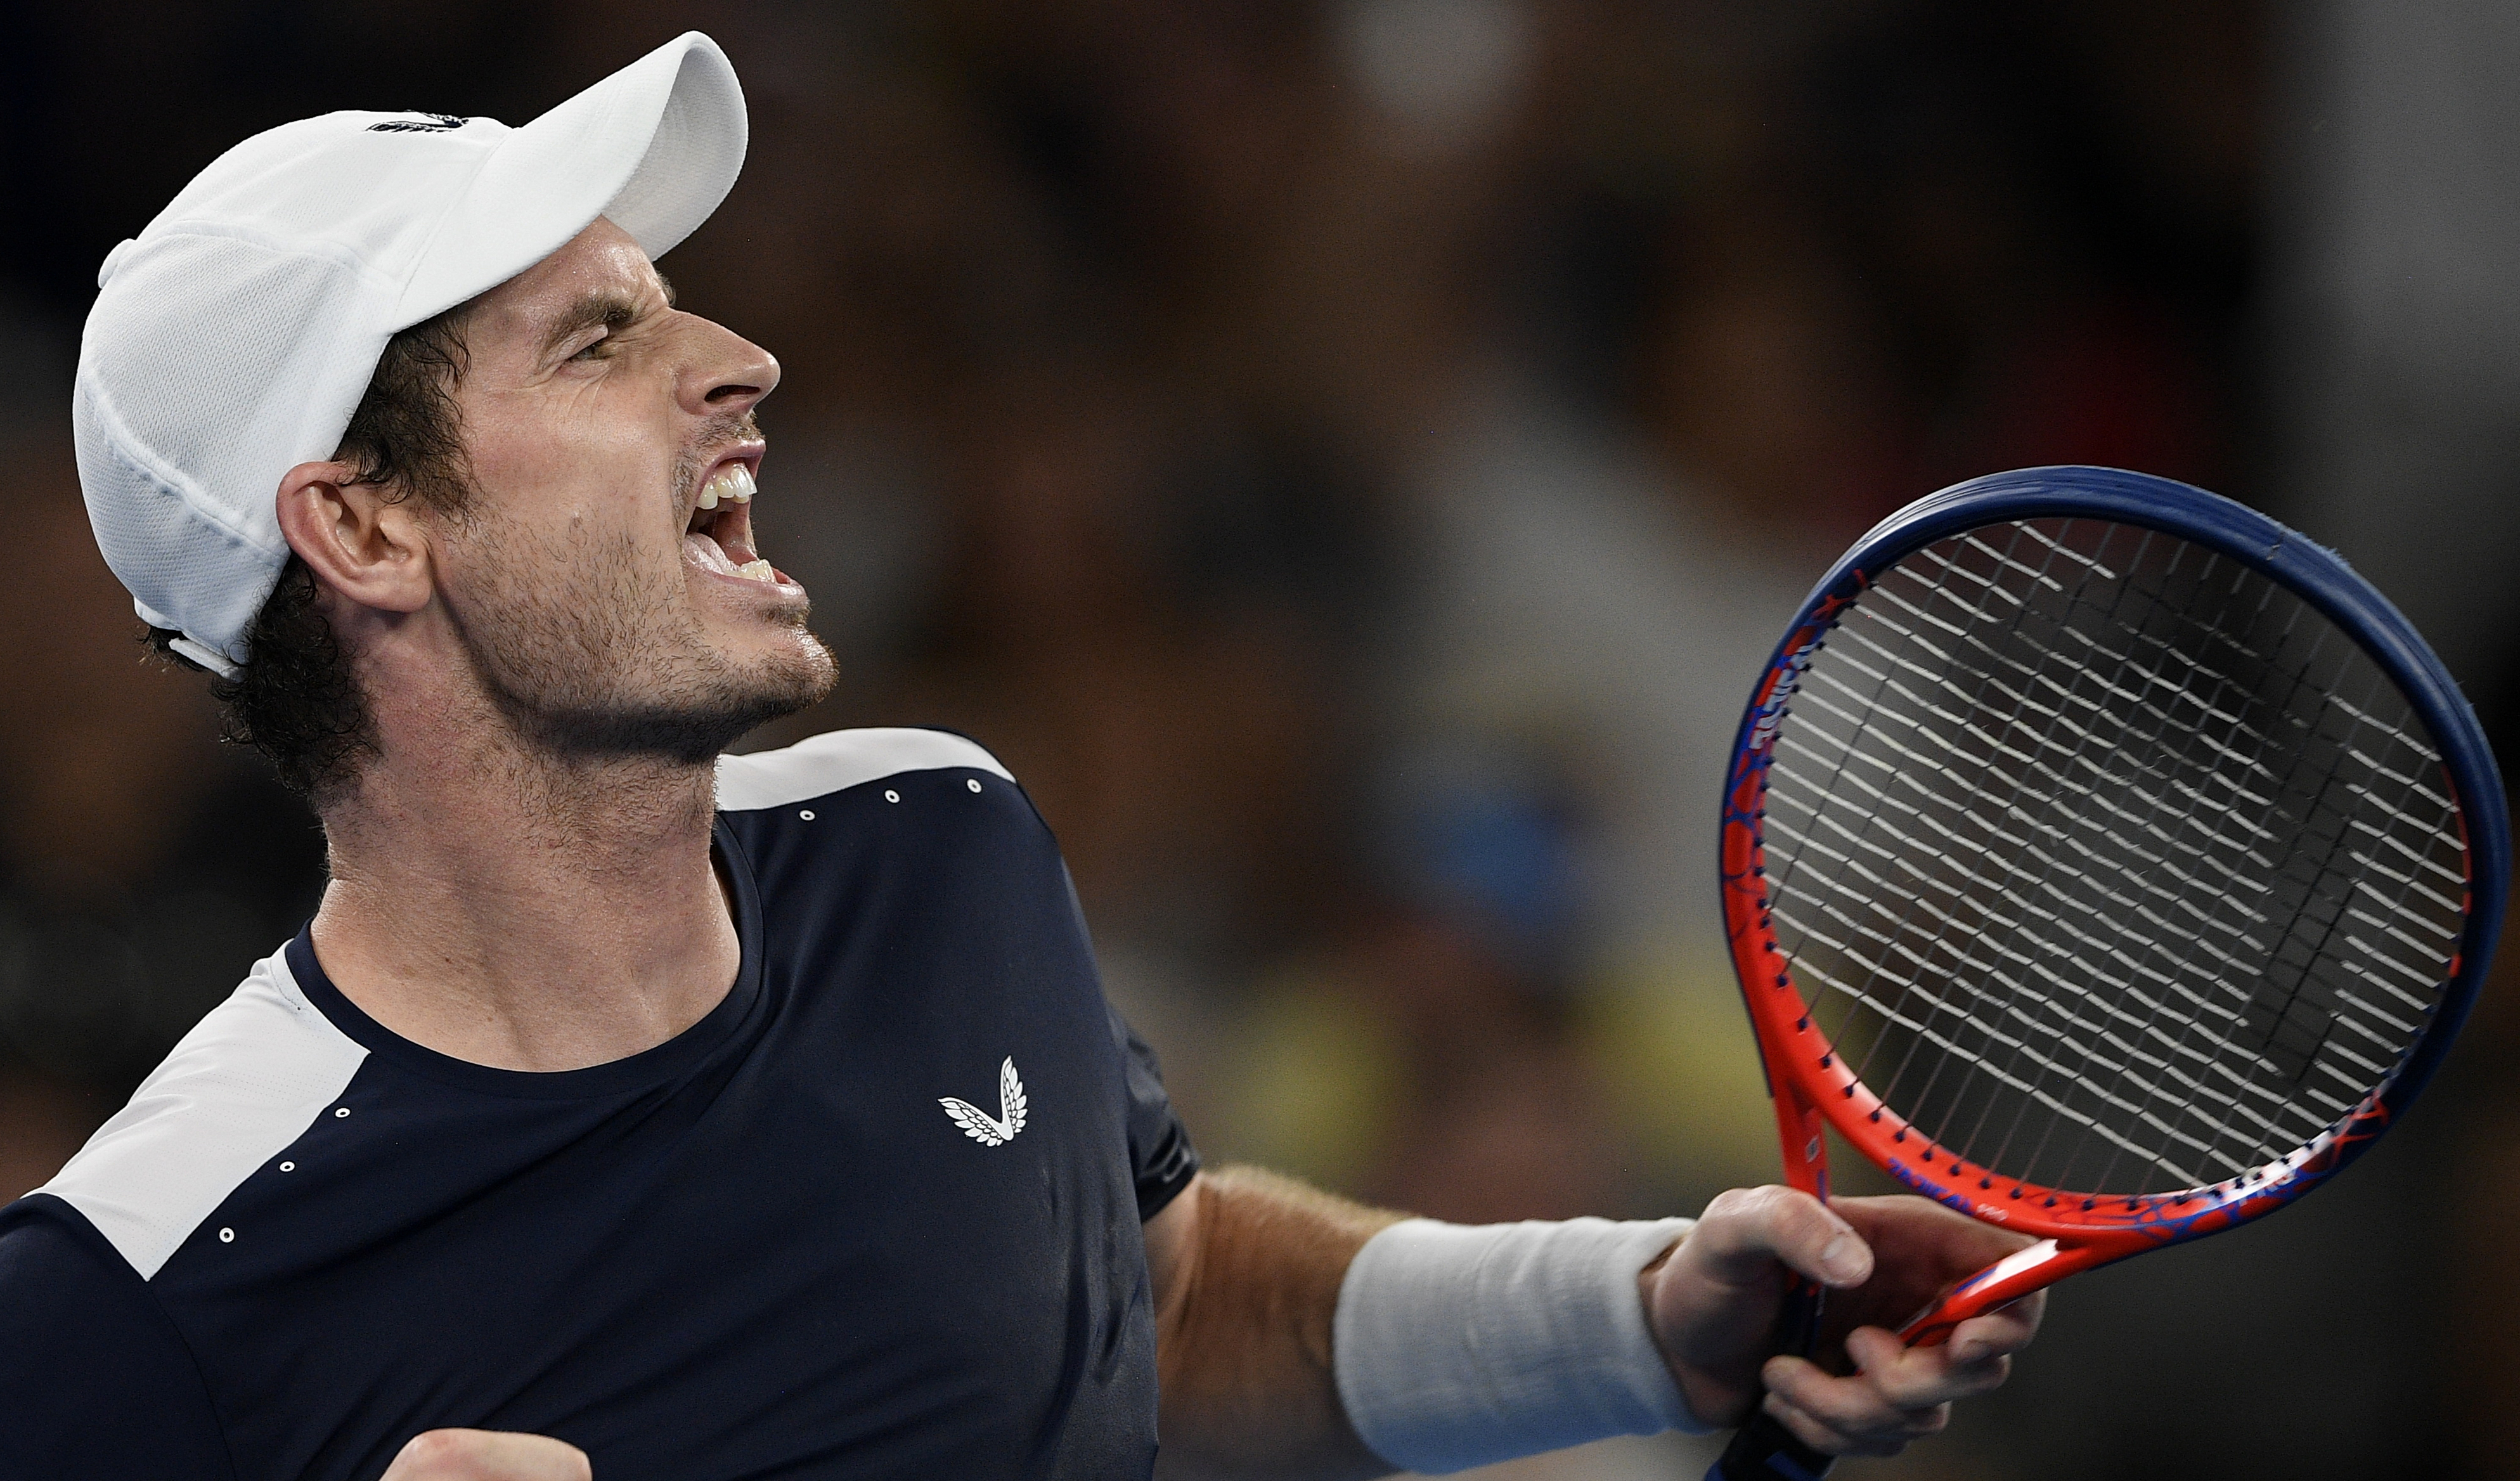 Britain's Andy Murray celebrates after winning the the third set tie-breaker against Spain's Roberto Bautista Agut during their first round match at the Australian Open tennis championships in Melbourne, Australia, Monday, Jan. 14, 2019. (AP Photo/Andy Brownbill)